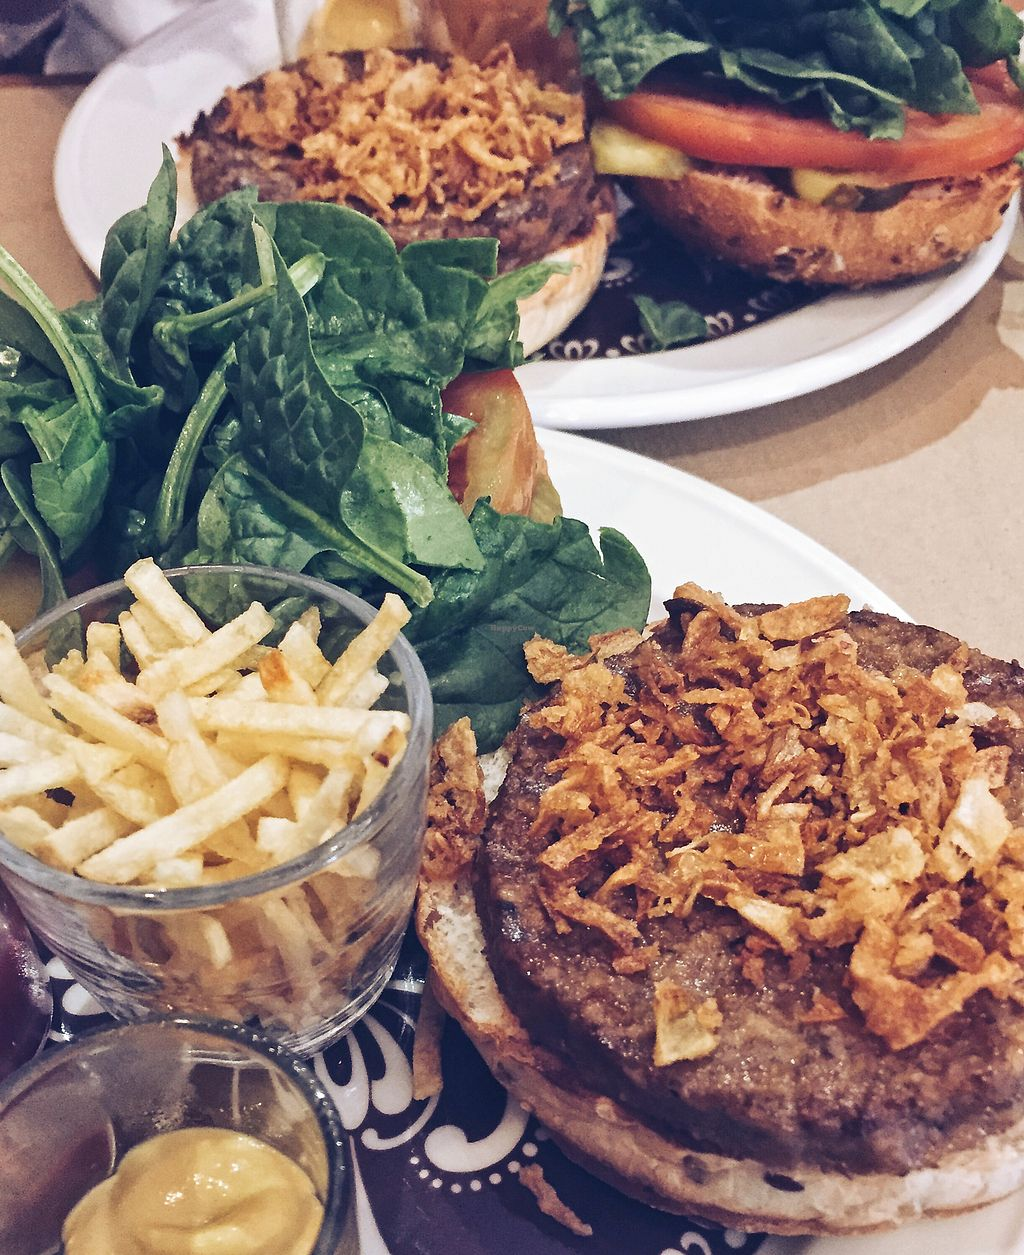 """Photo of Green Zone Bio Bar  by <a href=""""/members/profile/guillehdezp"""">guillehdezp</a> <br/>vegan burgers <br/> August 14, 2017  - <a href='/contact/abuse/image/88068/292736'>Report</a>"""